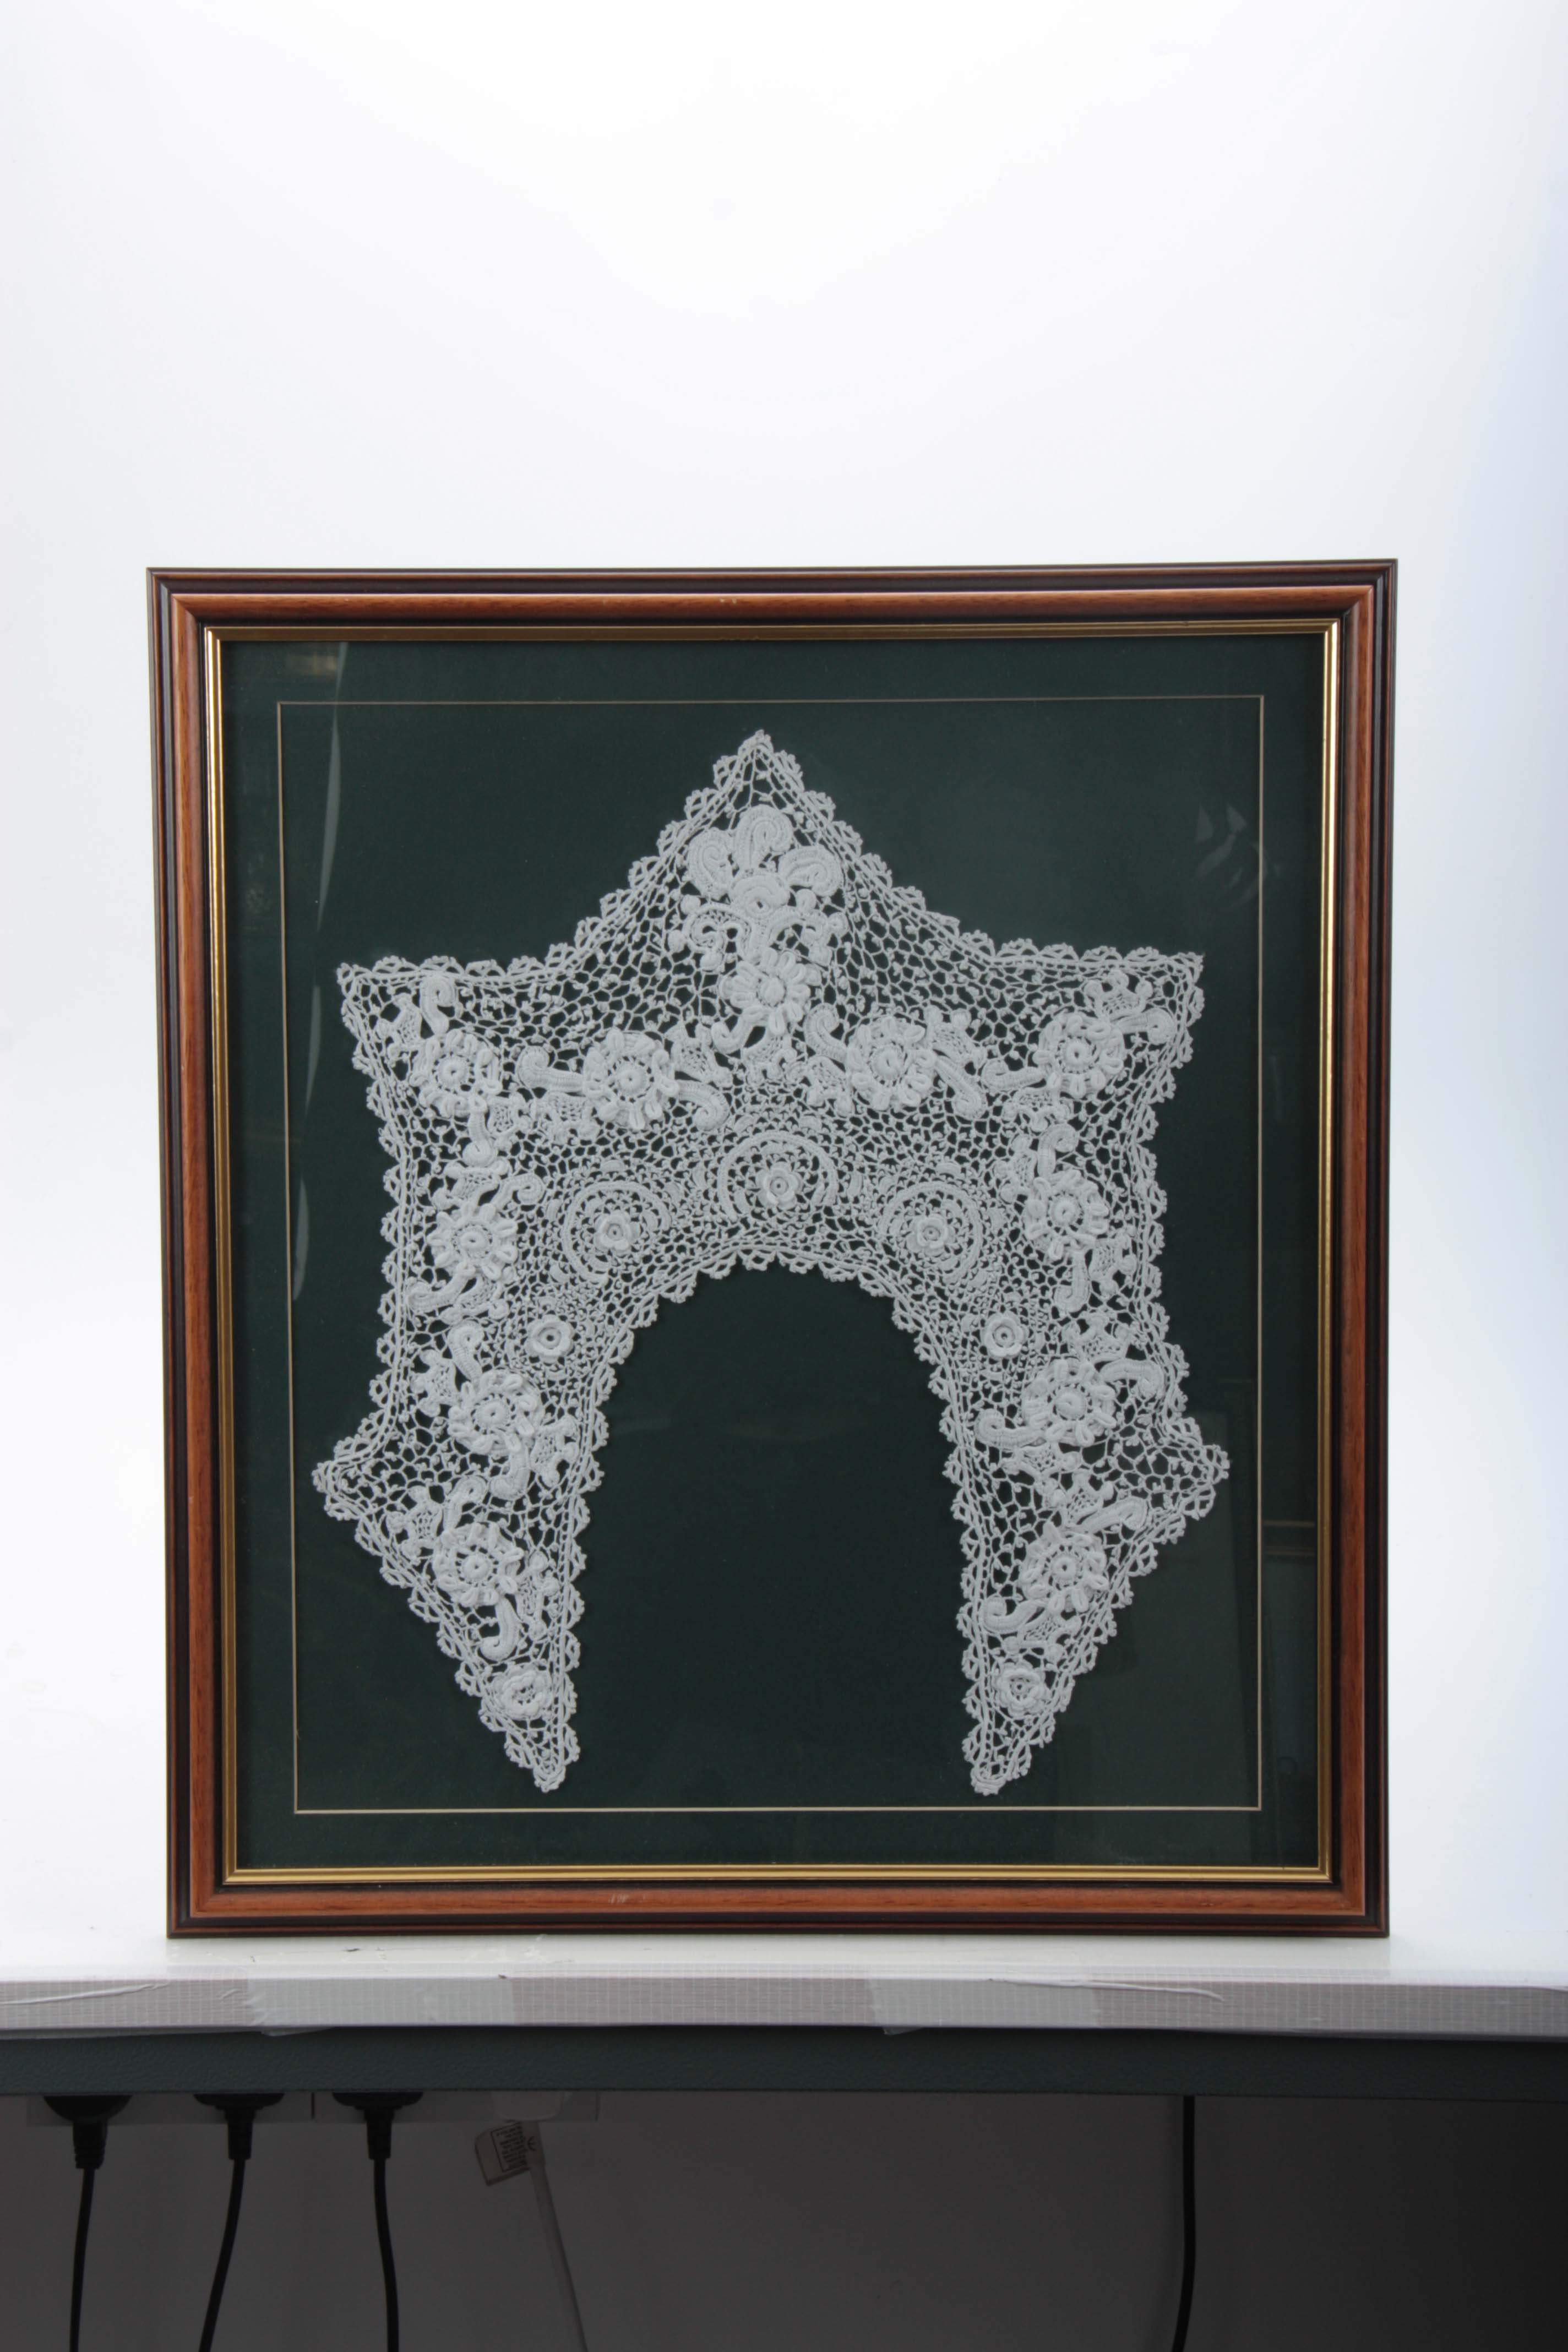 Lot 618 - A LATE 19TH CENTURY FRAMED IRISH LACEWORK COLLAR in a moulded frame, the frame is 43cm wide, 48cm